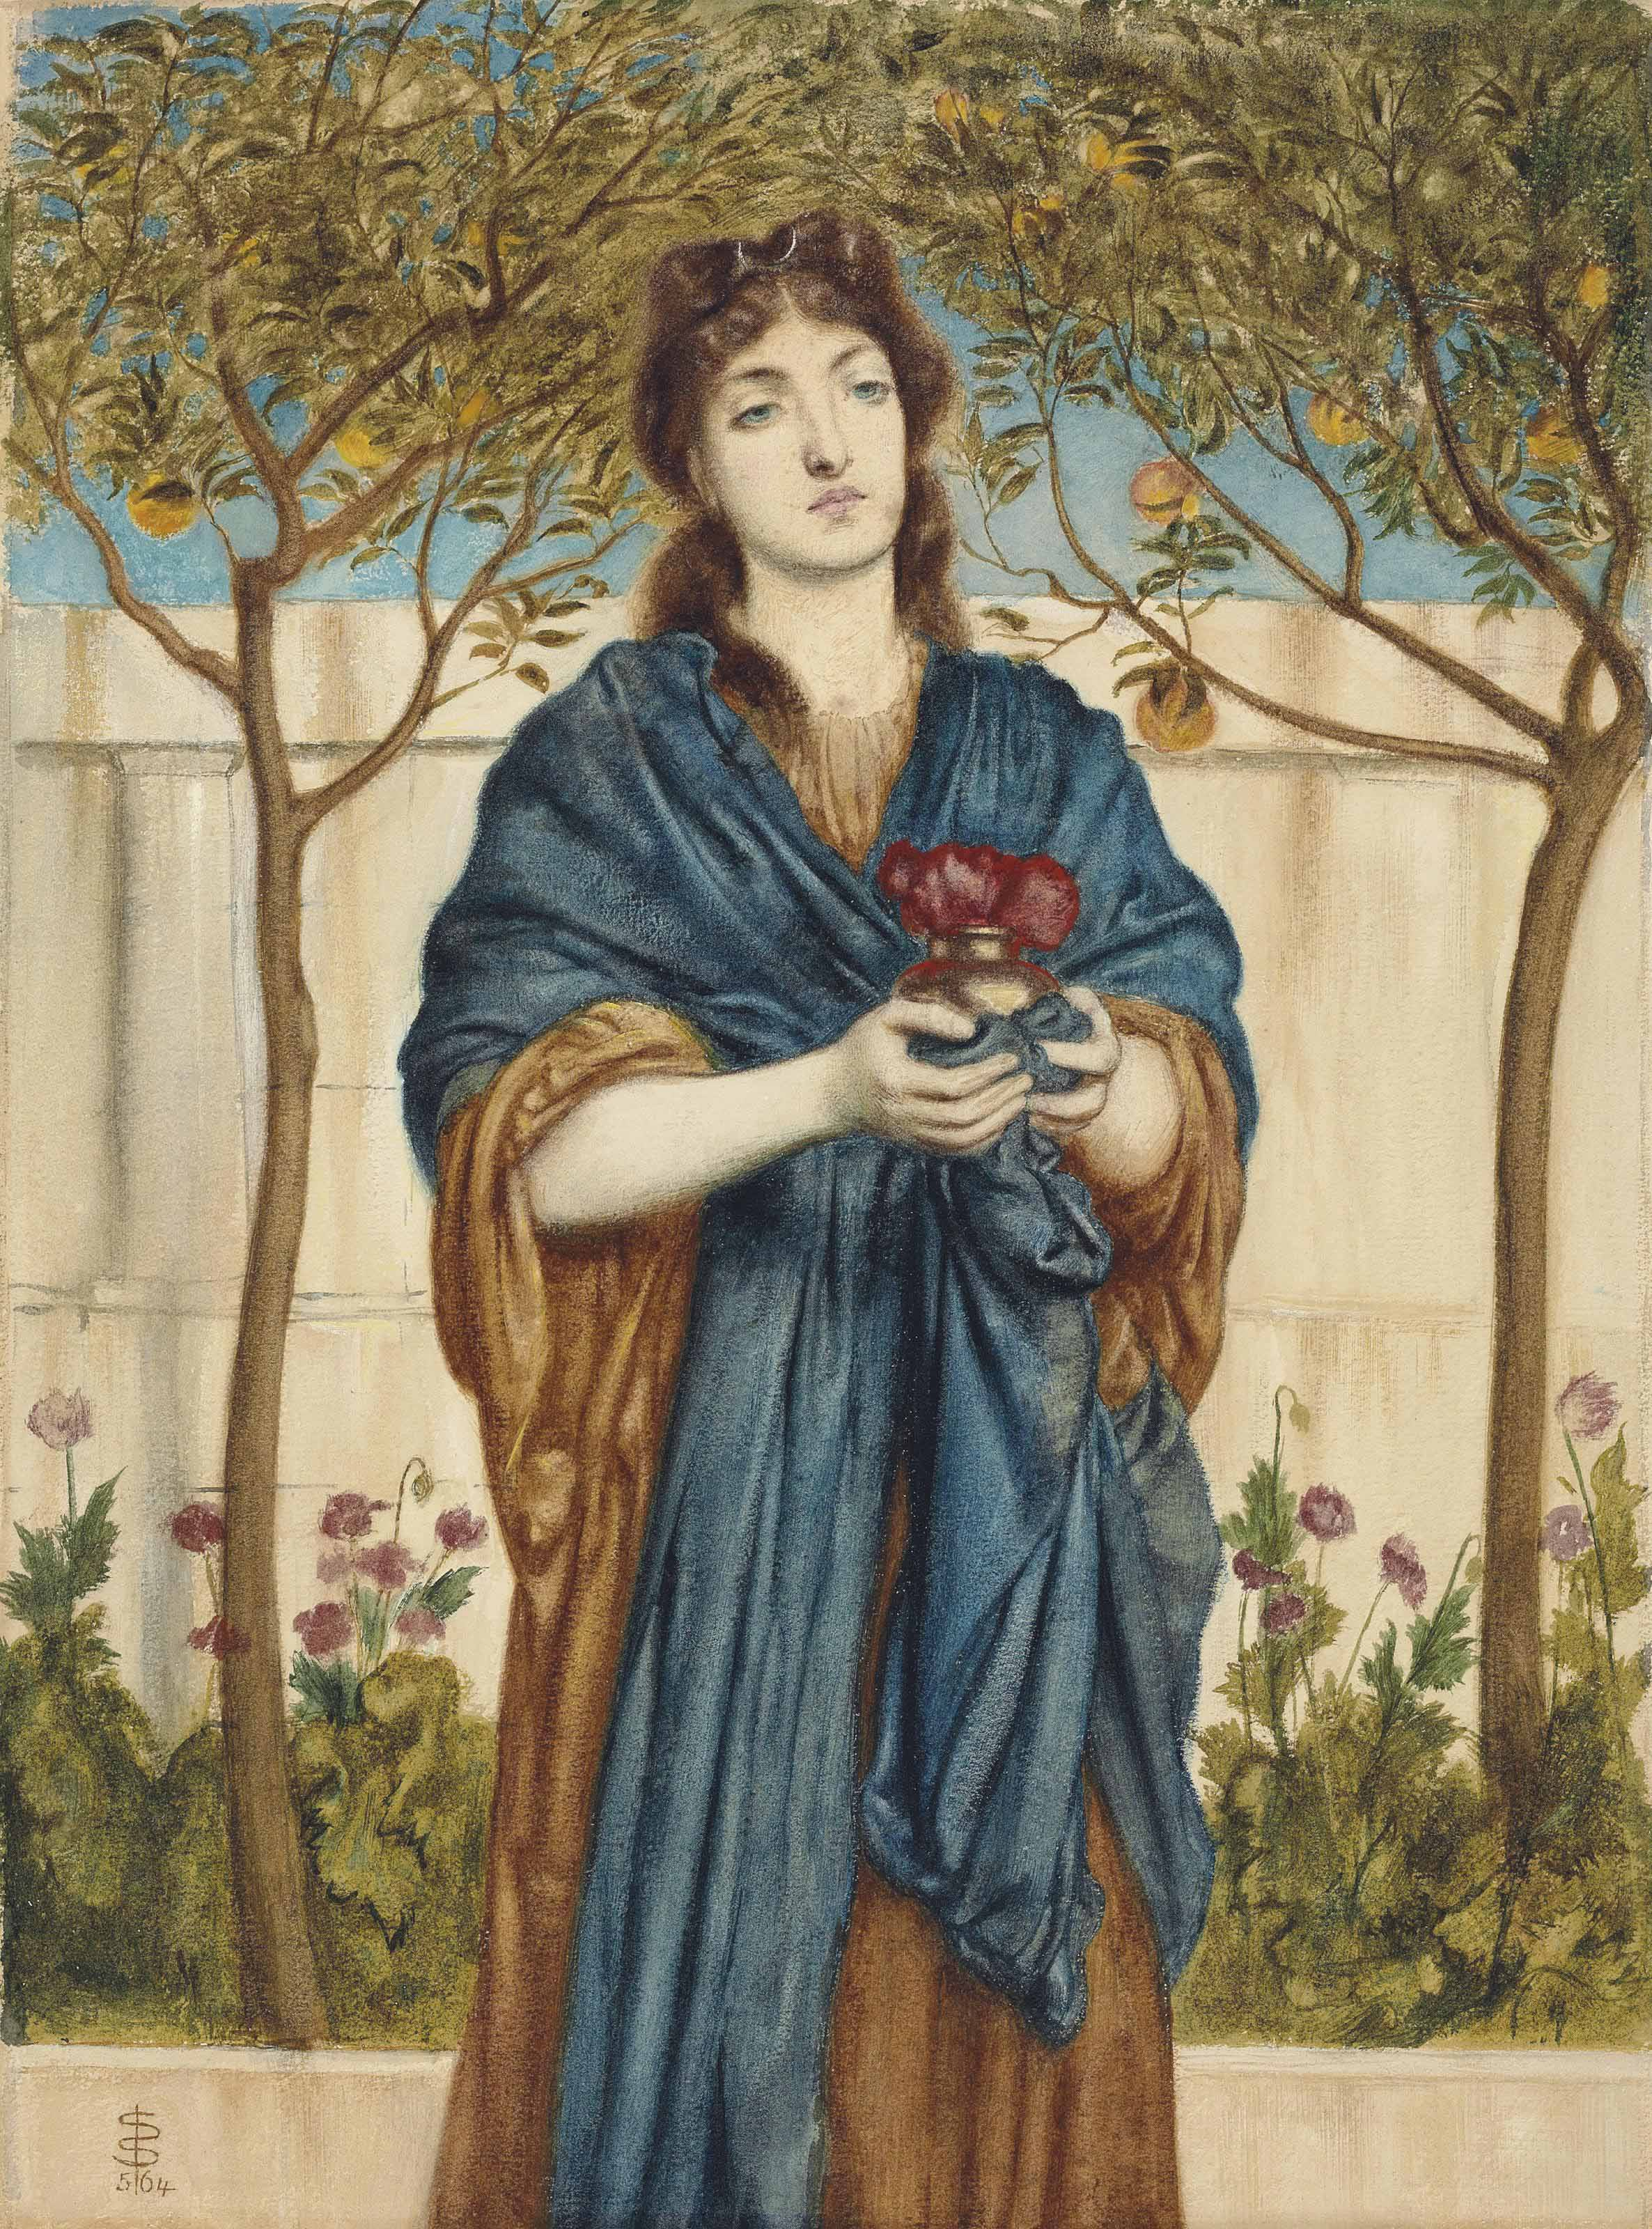 A priestess of Diana offering Poppies